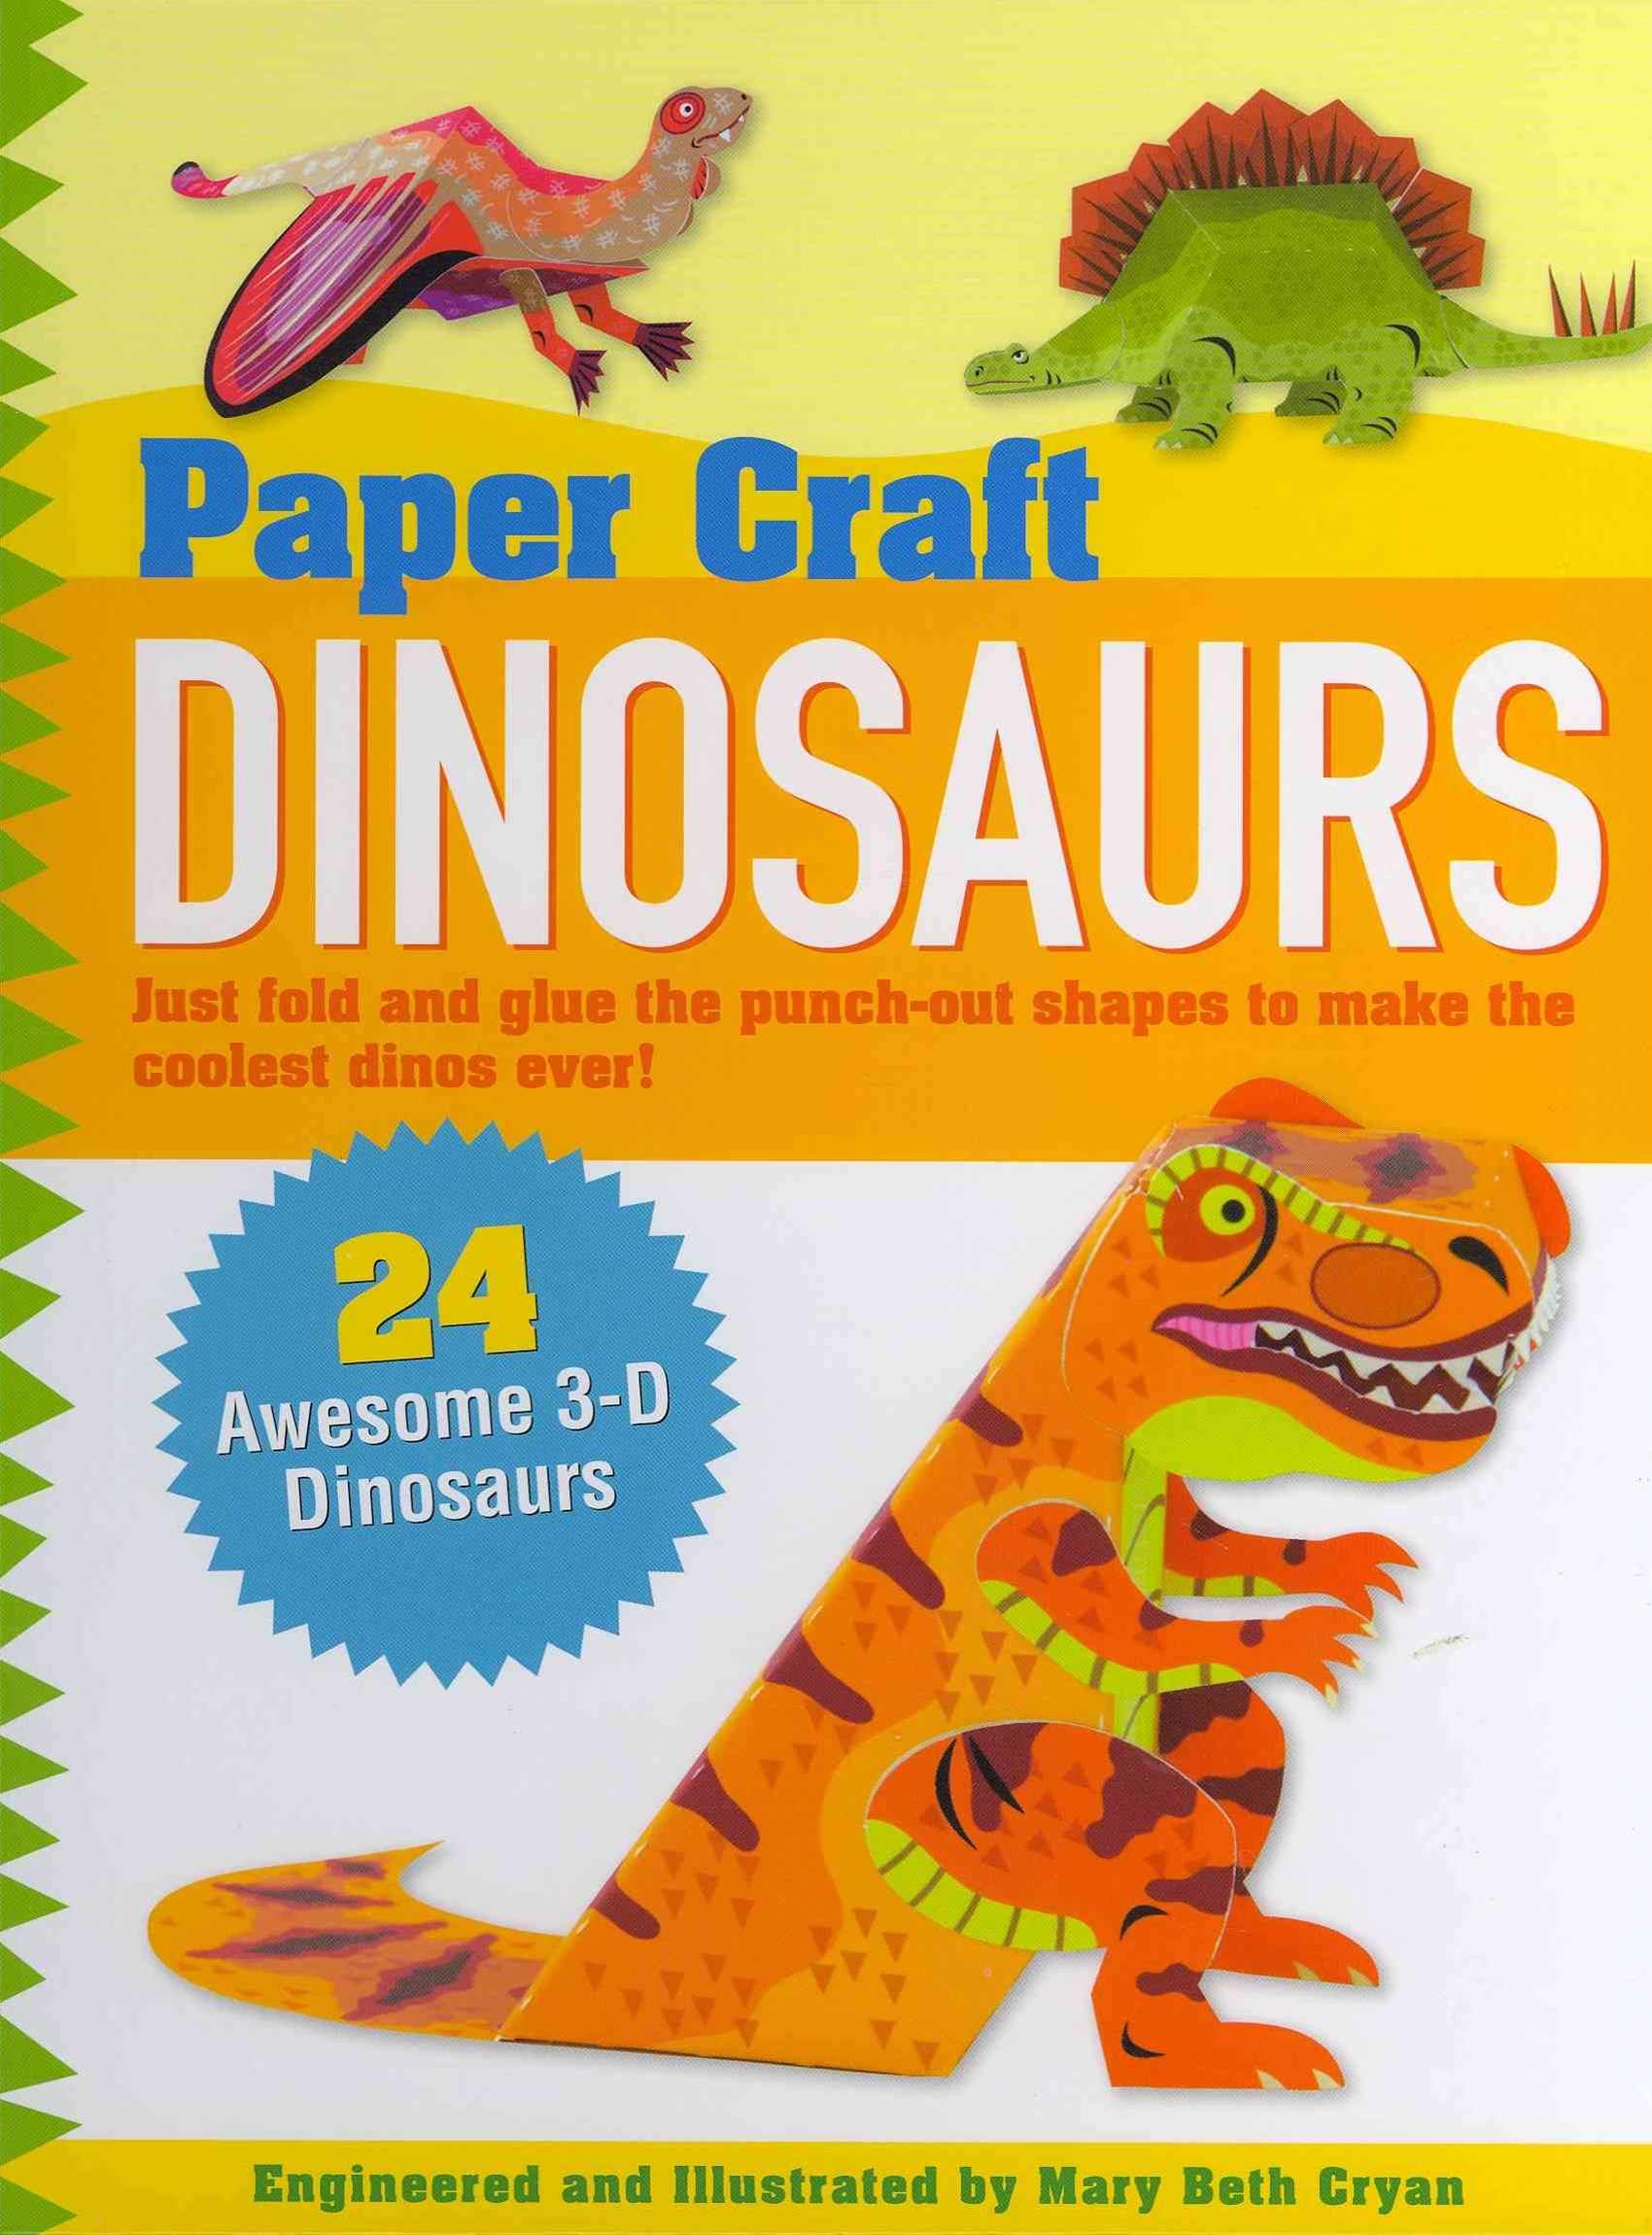 Paper Craft Dinosaurs